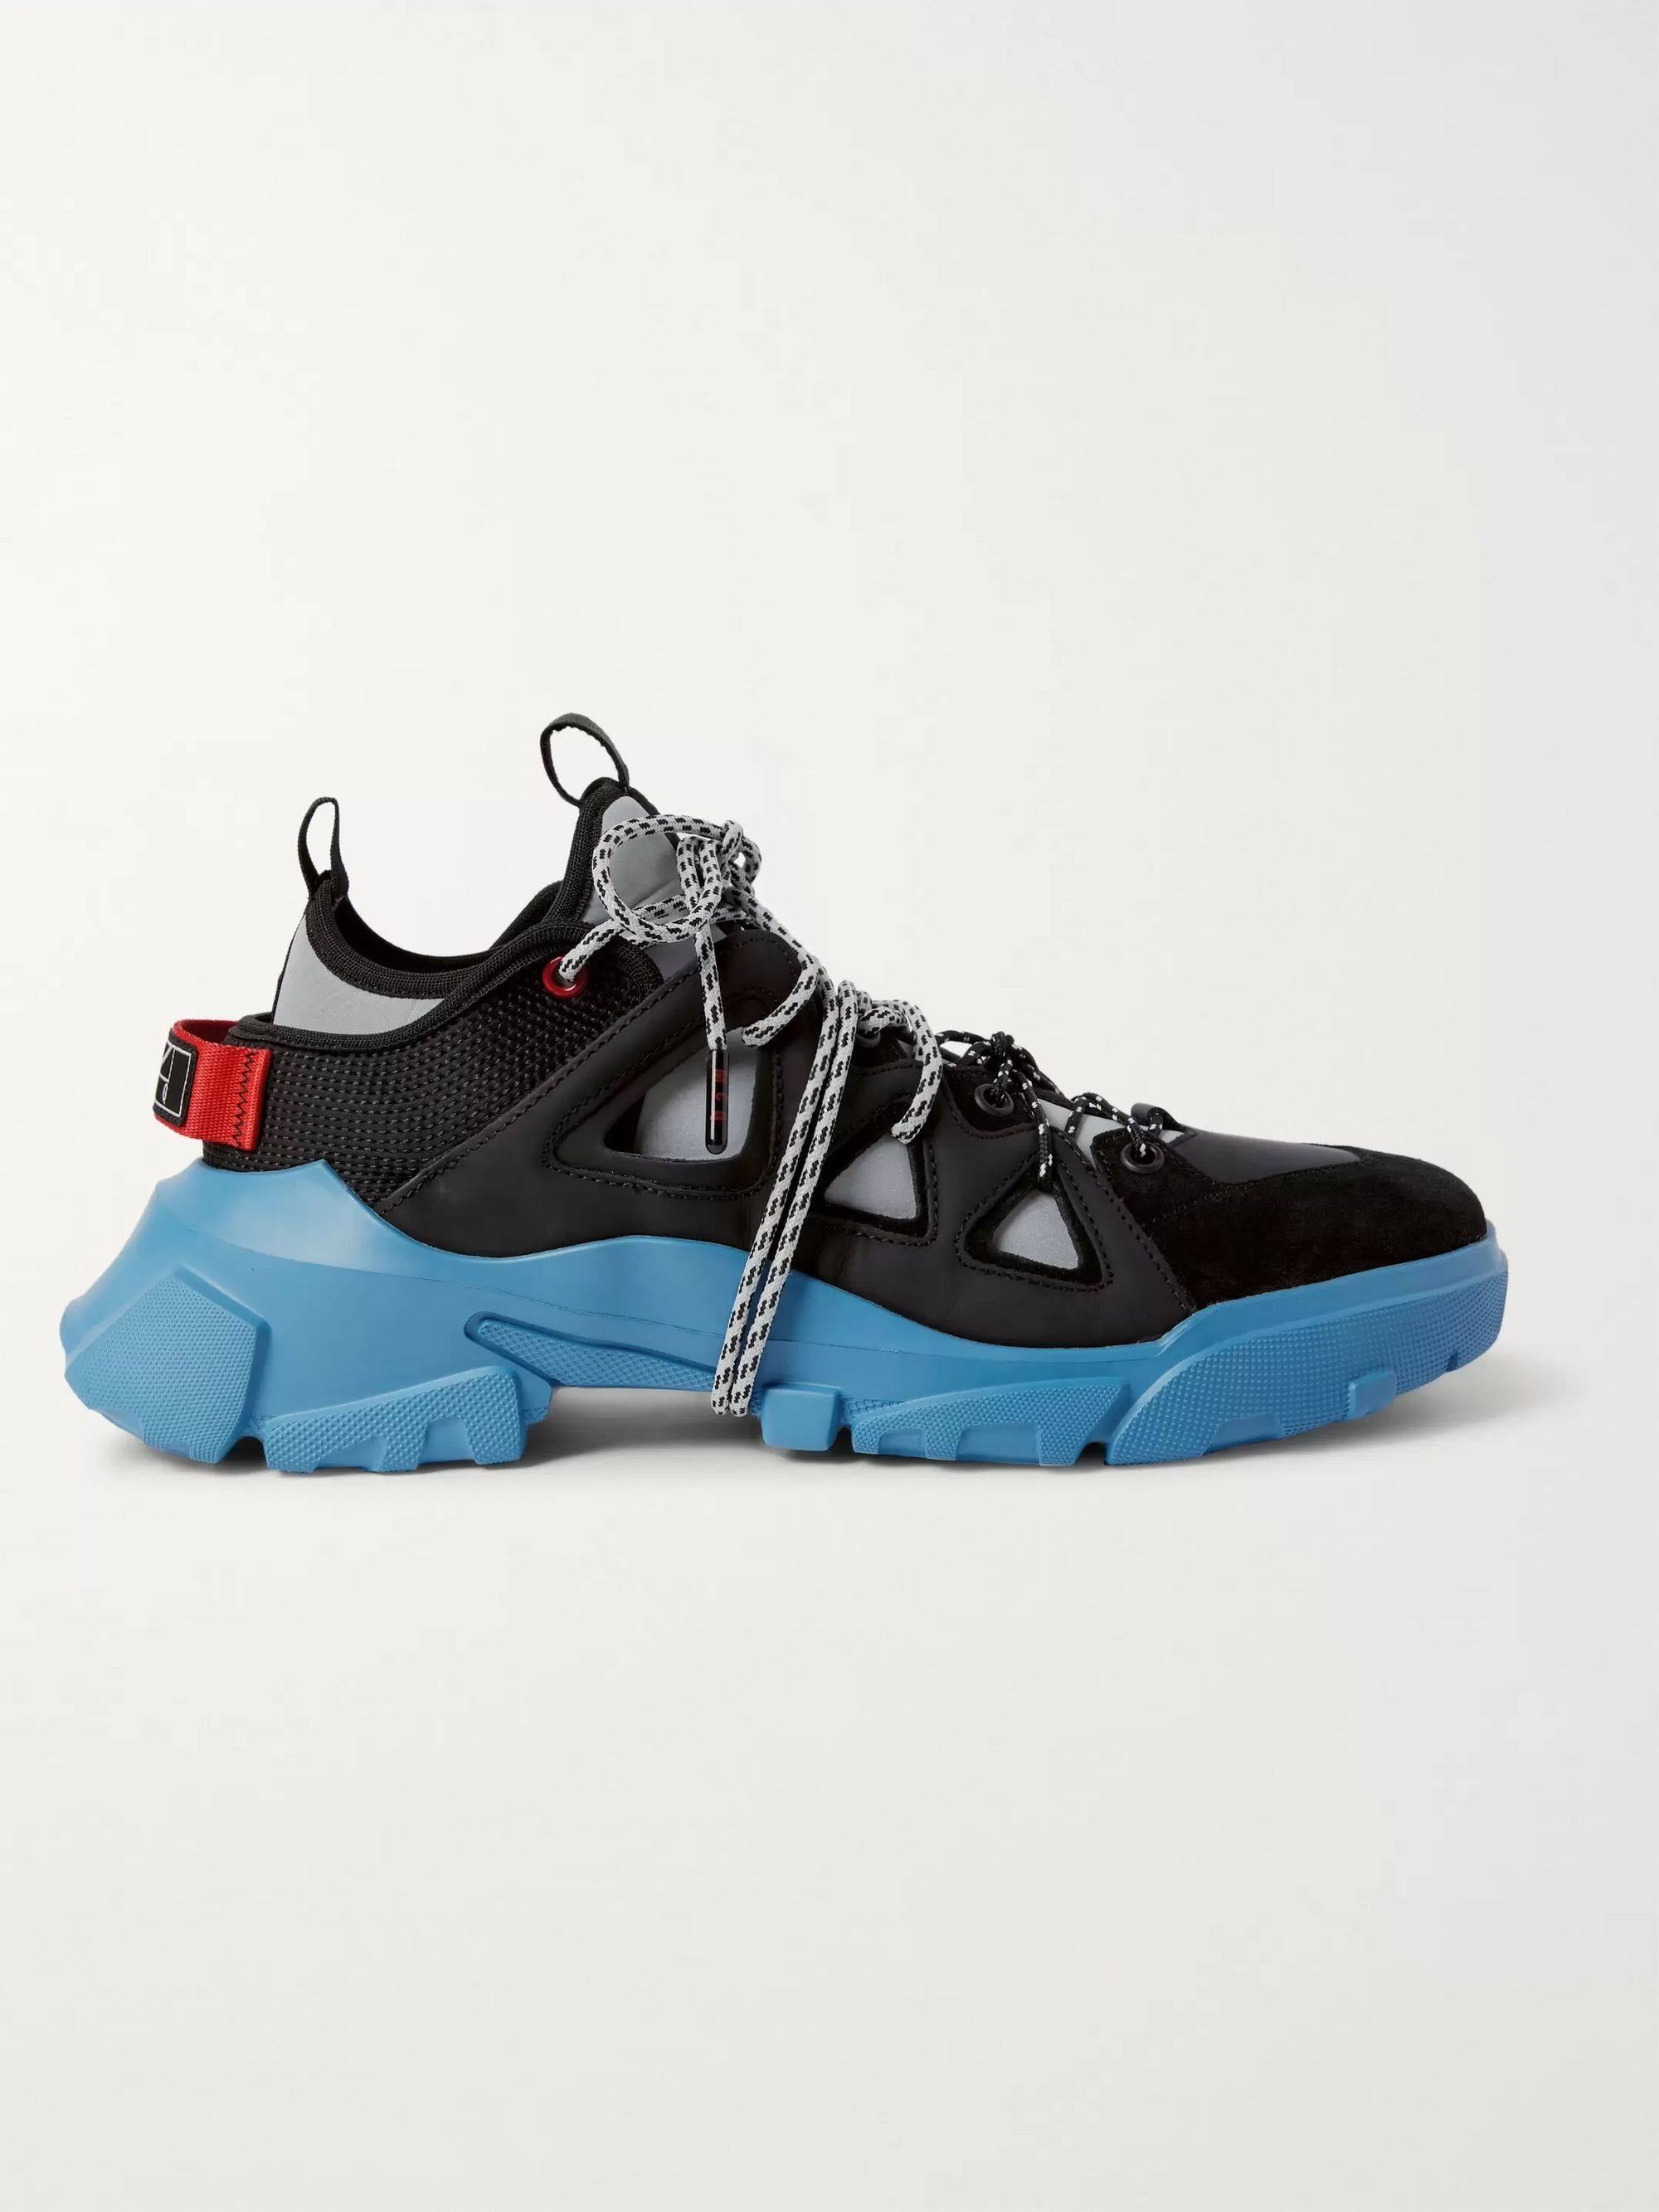 McQ Alexander McQueen Orbyt Suede, Leather and Neoprene Sneakers